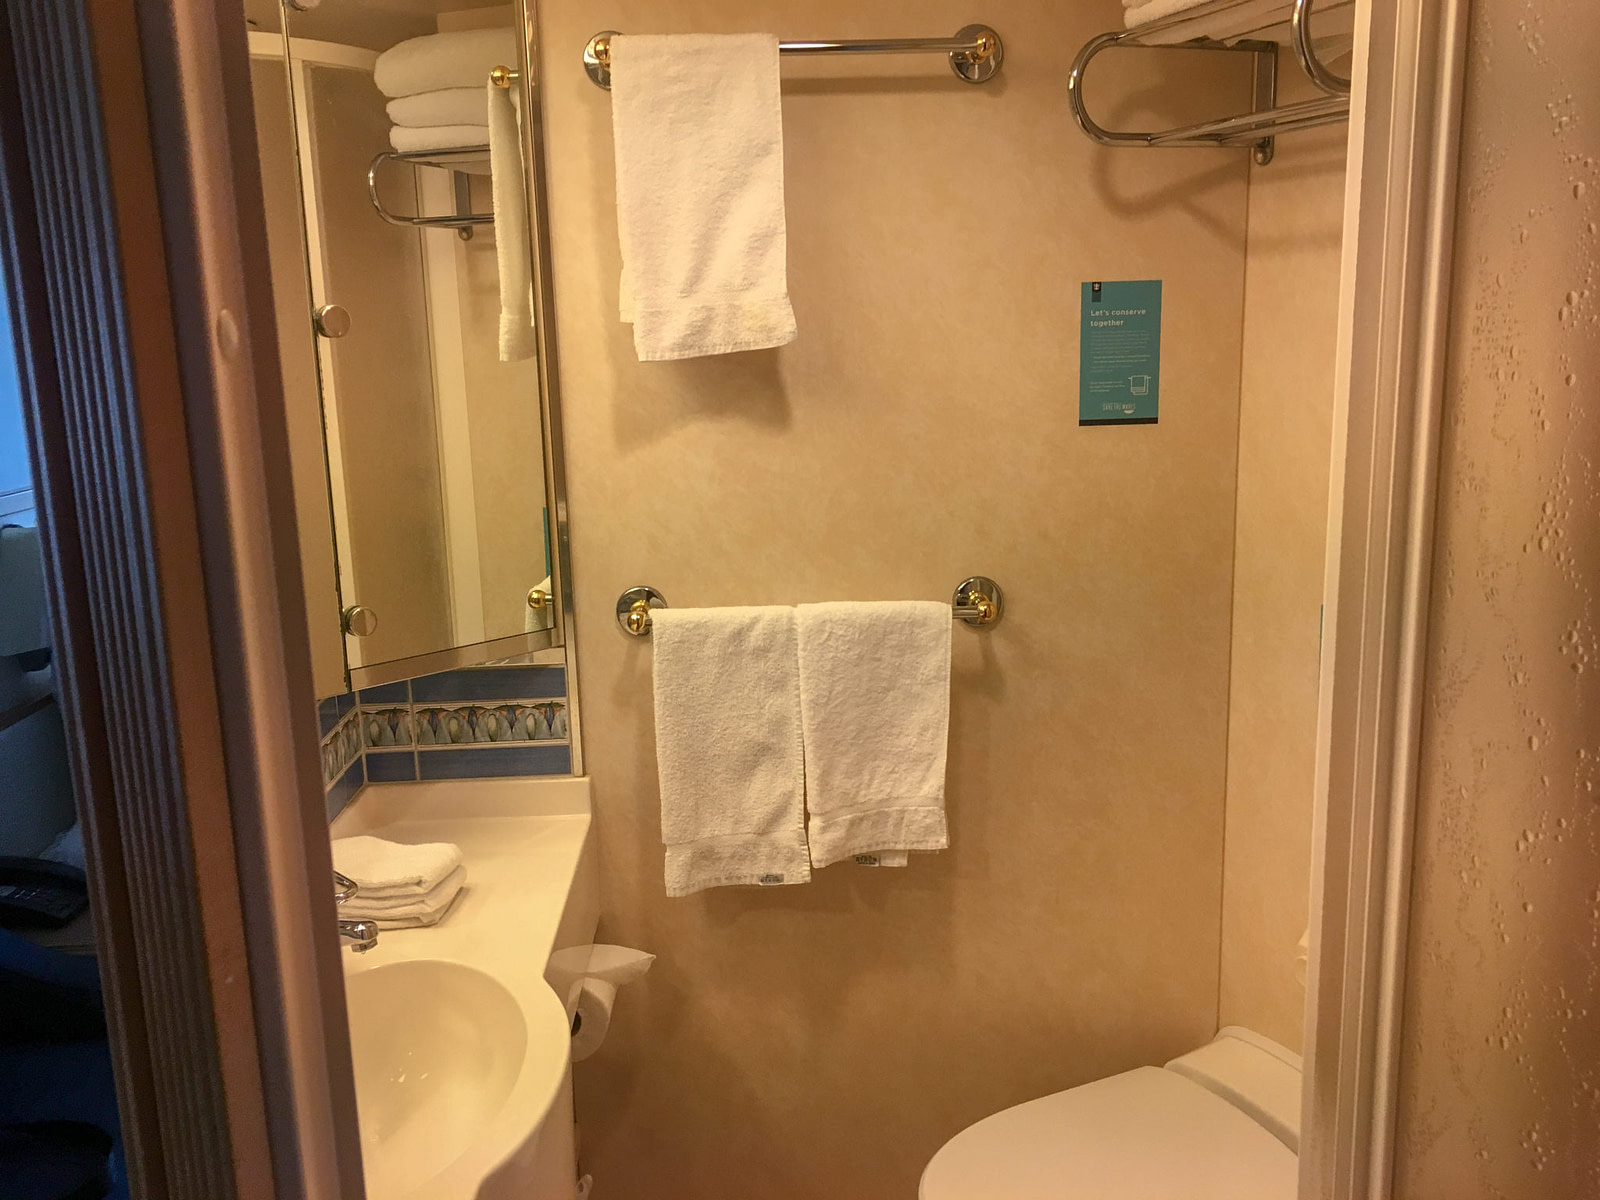 Cruise ship stateroom bathroom with shower, toilet, basin and three handtowels